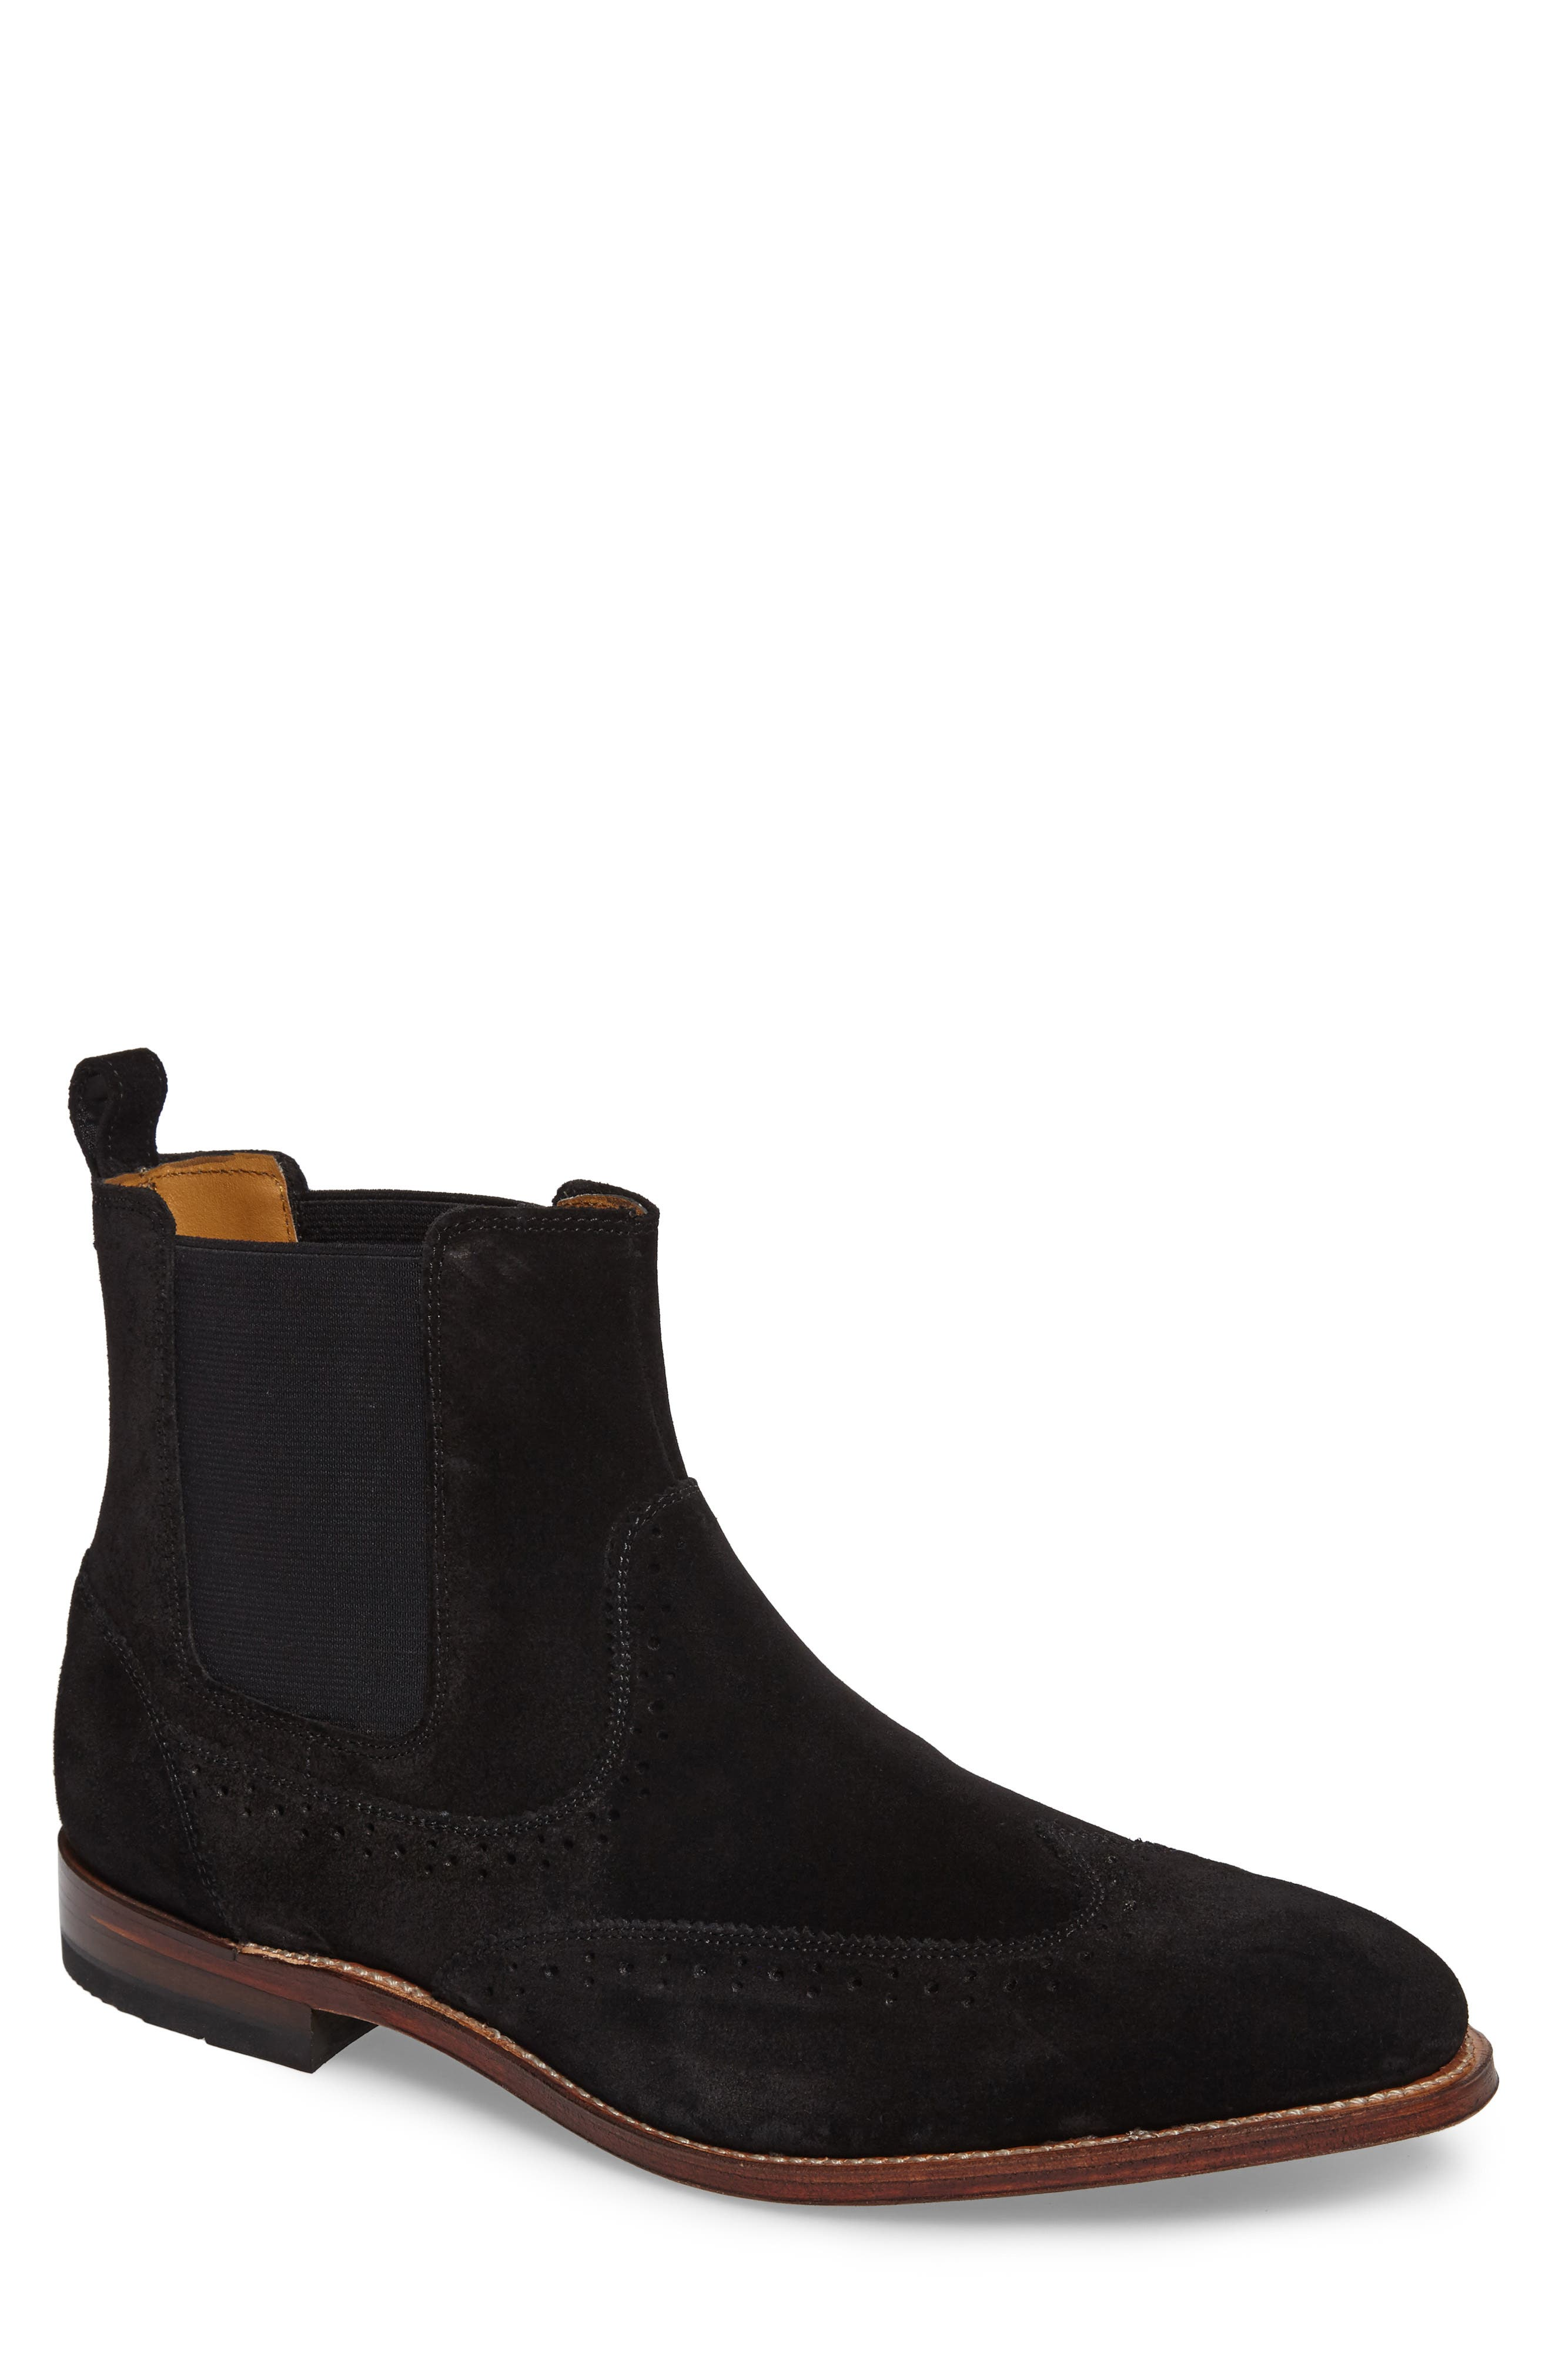 Madison II Wingtip Chelsea Boot,                         Main,                         color, BLACK SUEDE